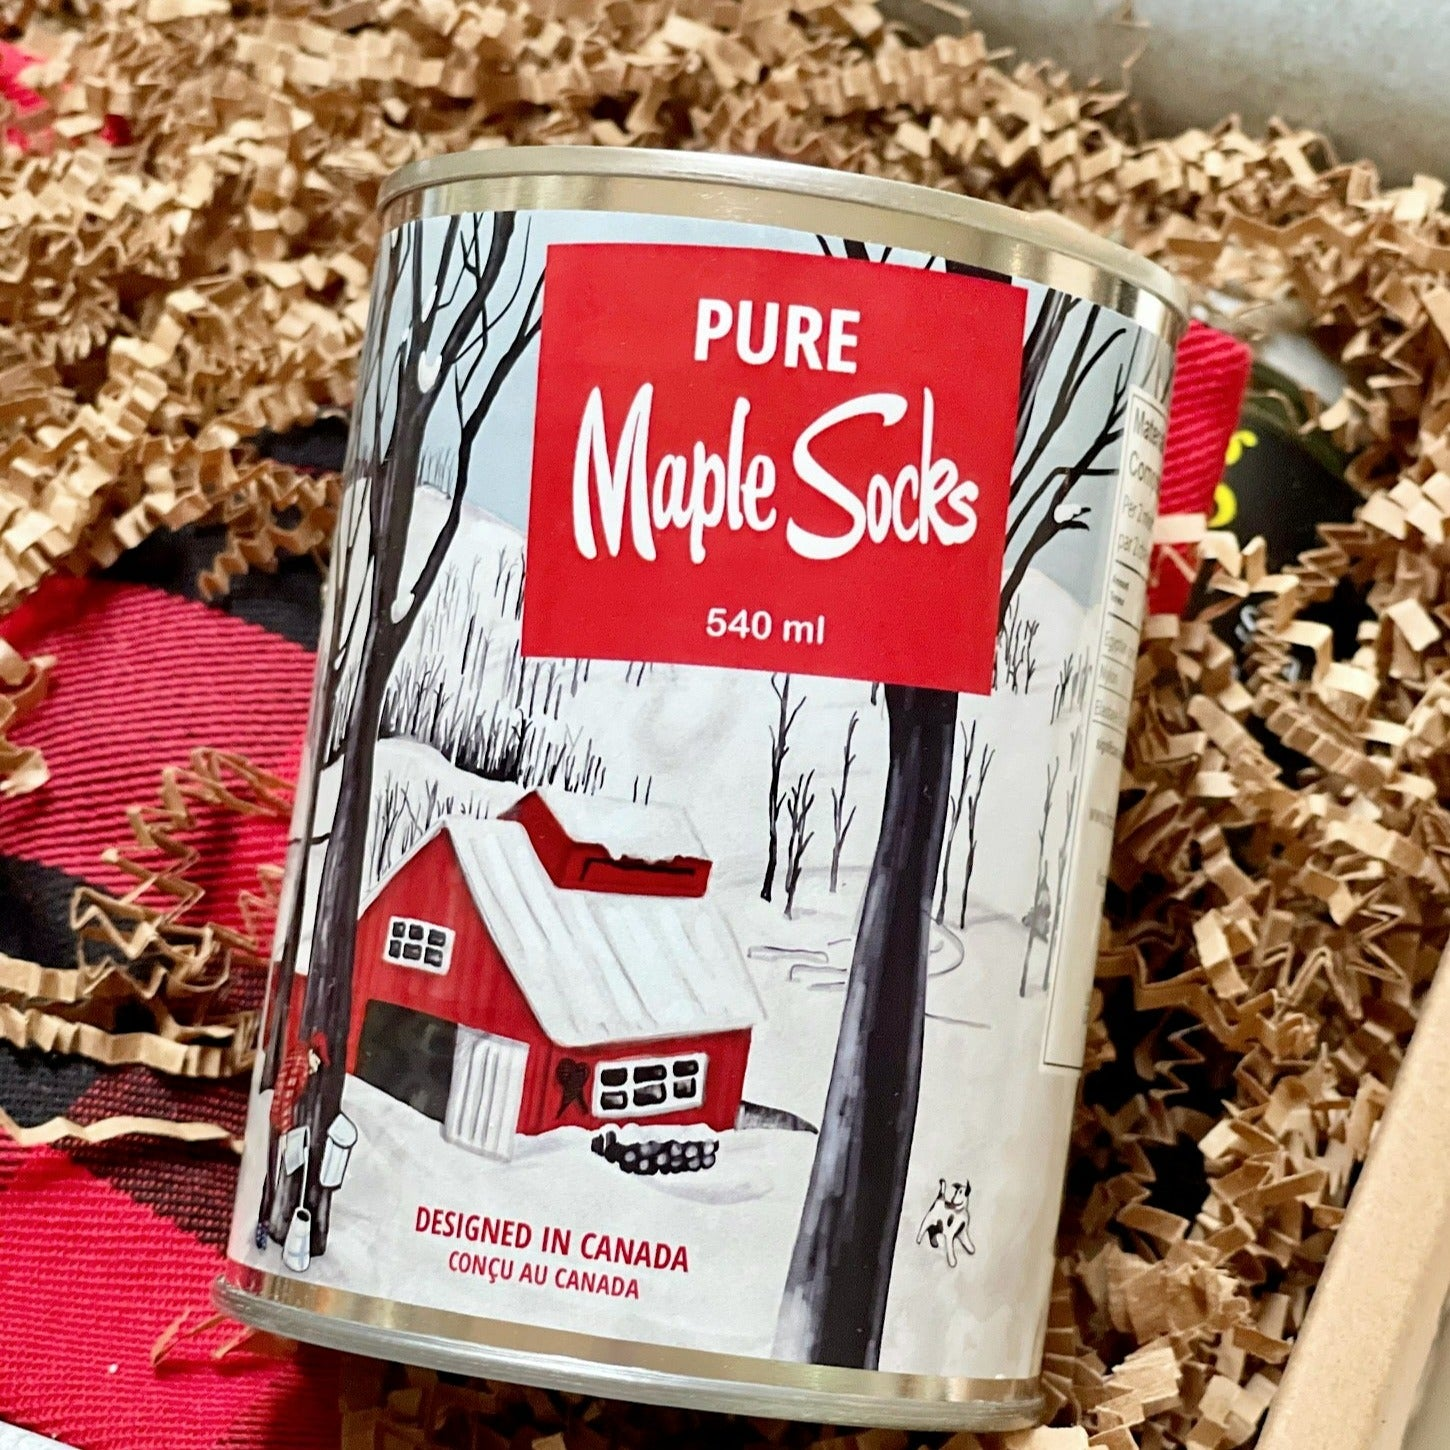 Hygge in a Box: Quarterly Subscription